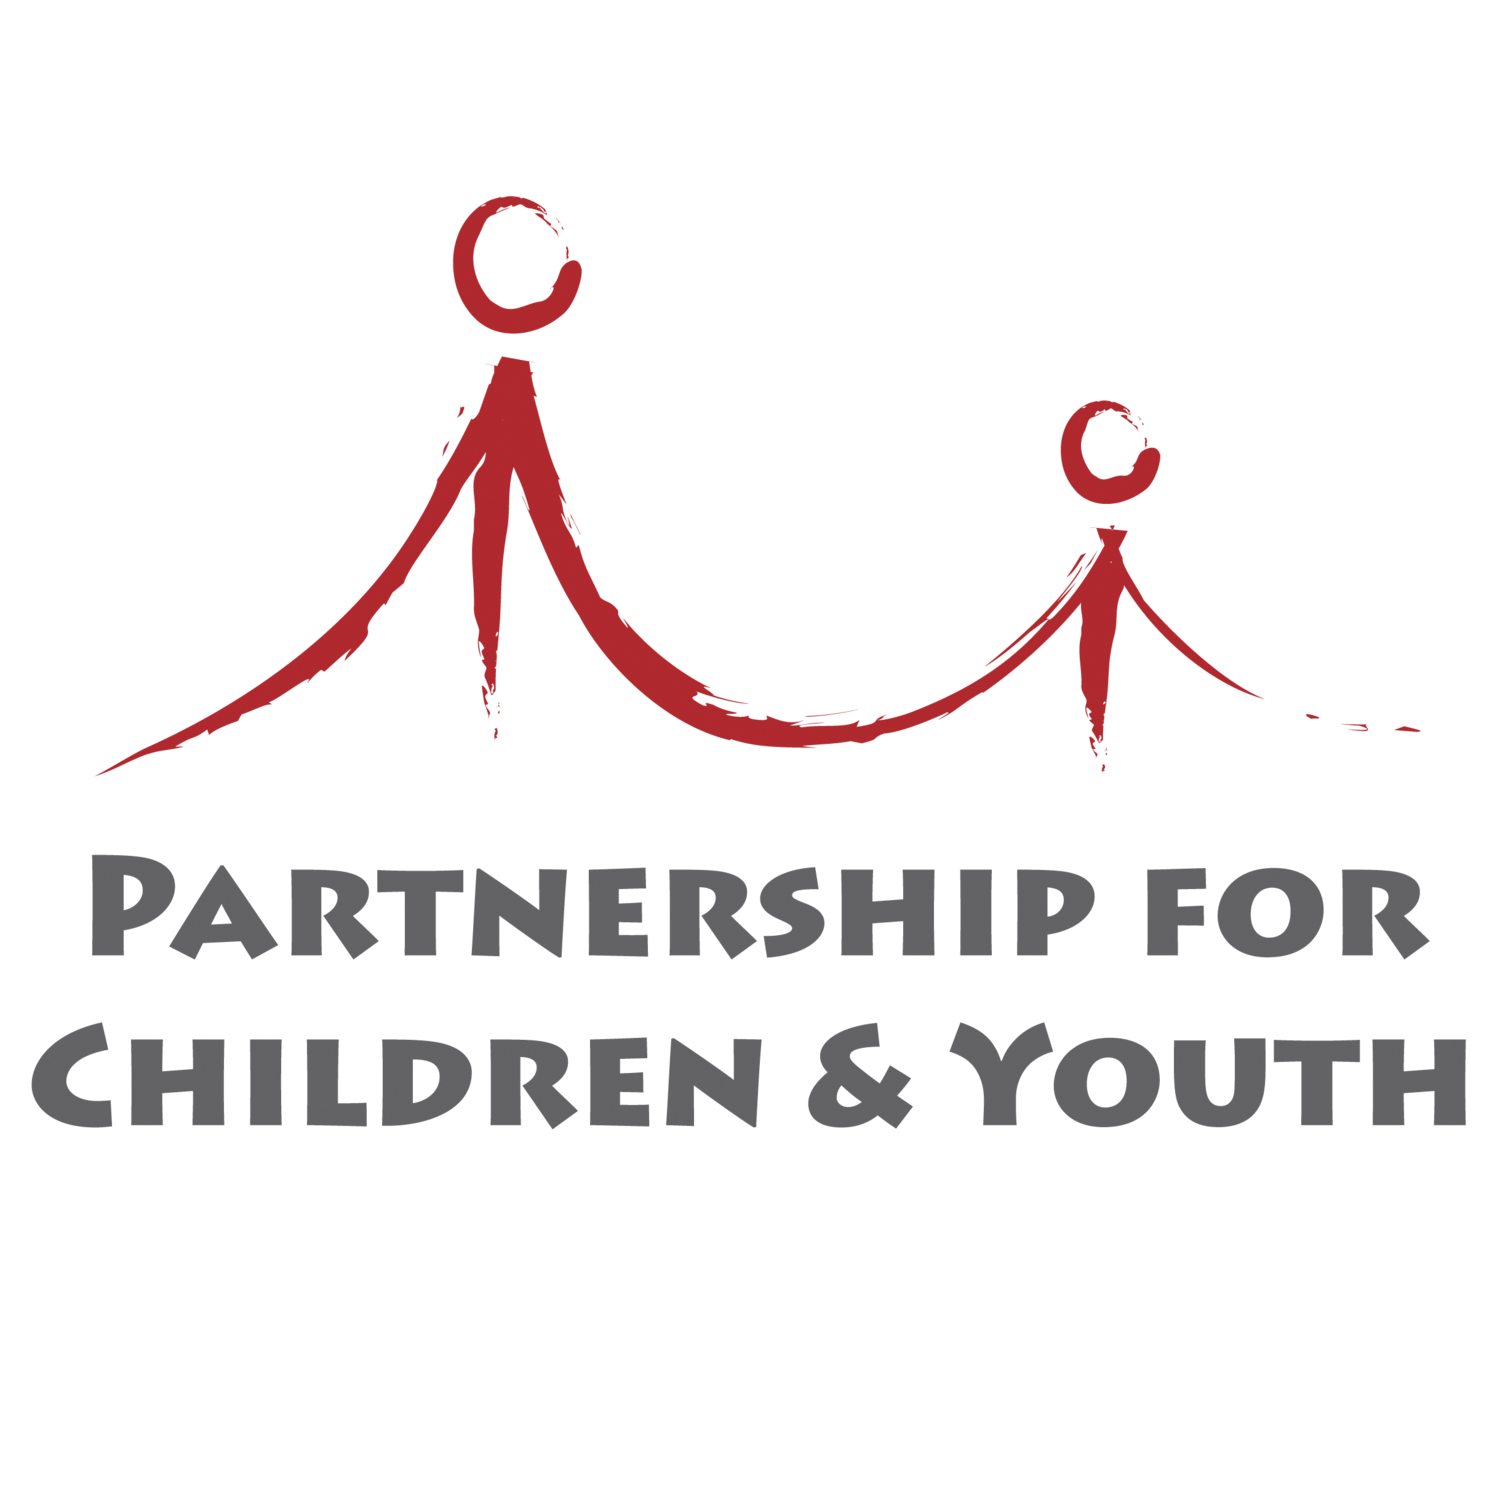 Partnership for Children & Youth